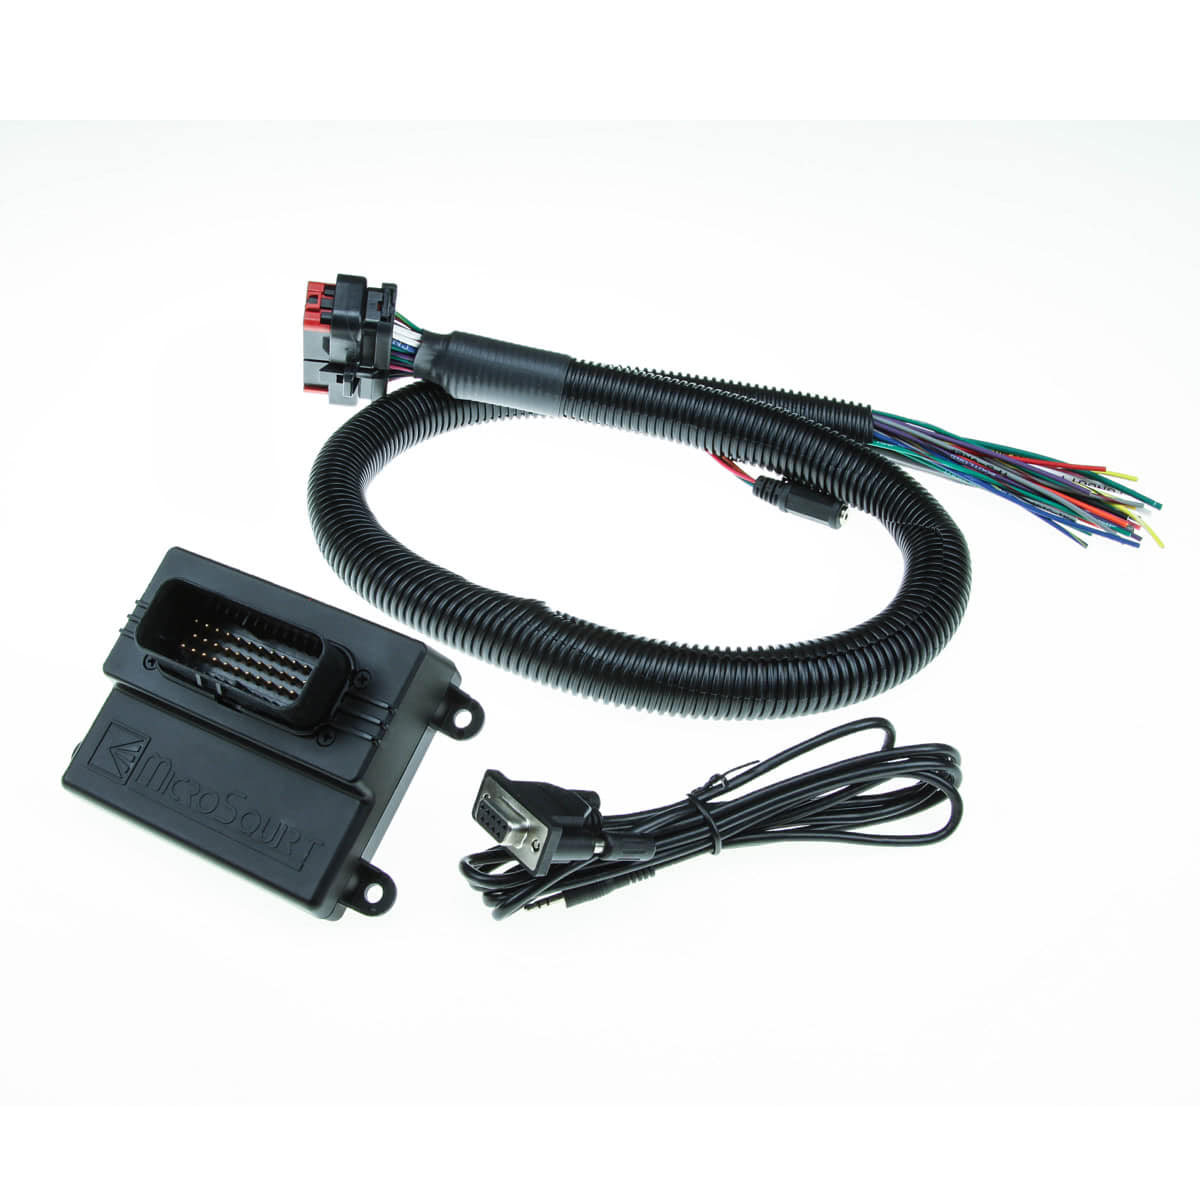 The Versatile Microsquirt With 30 Harness Version Ecu 4r70w Wire